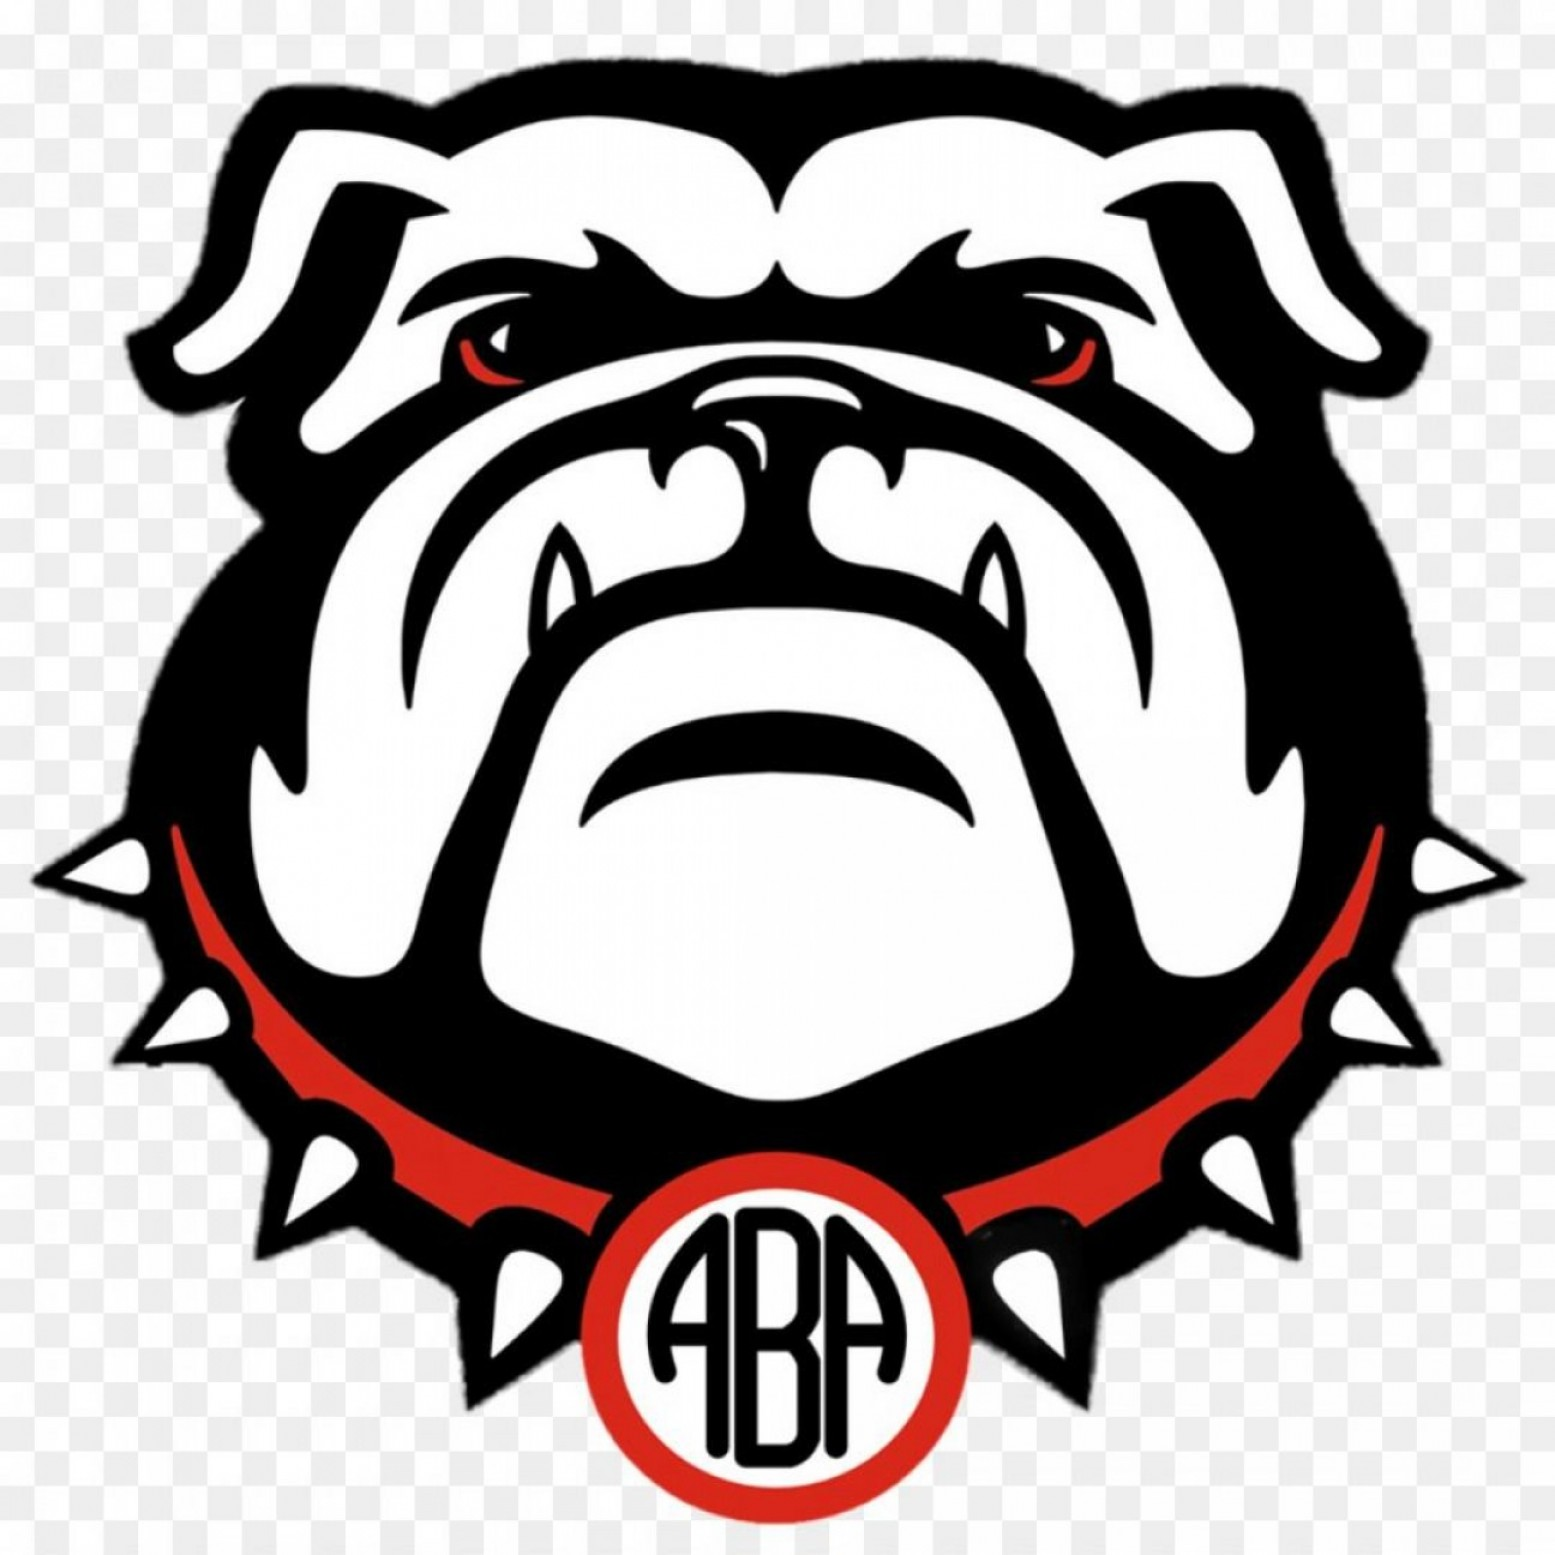 Best Free Georgia Bulldogs Football Logo Vector Cdr.